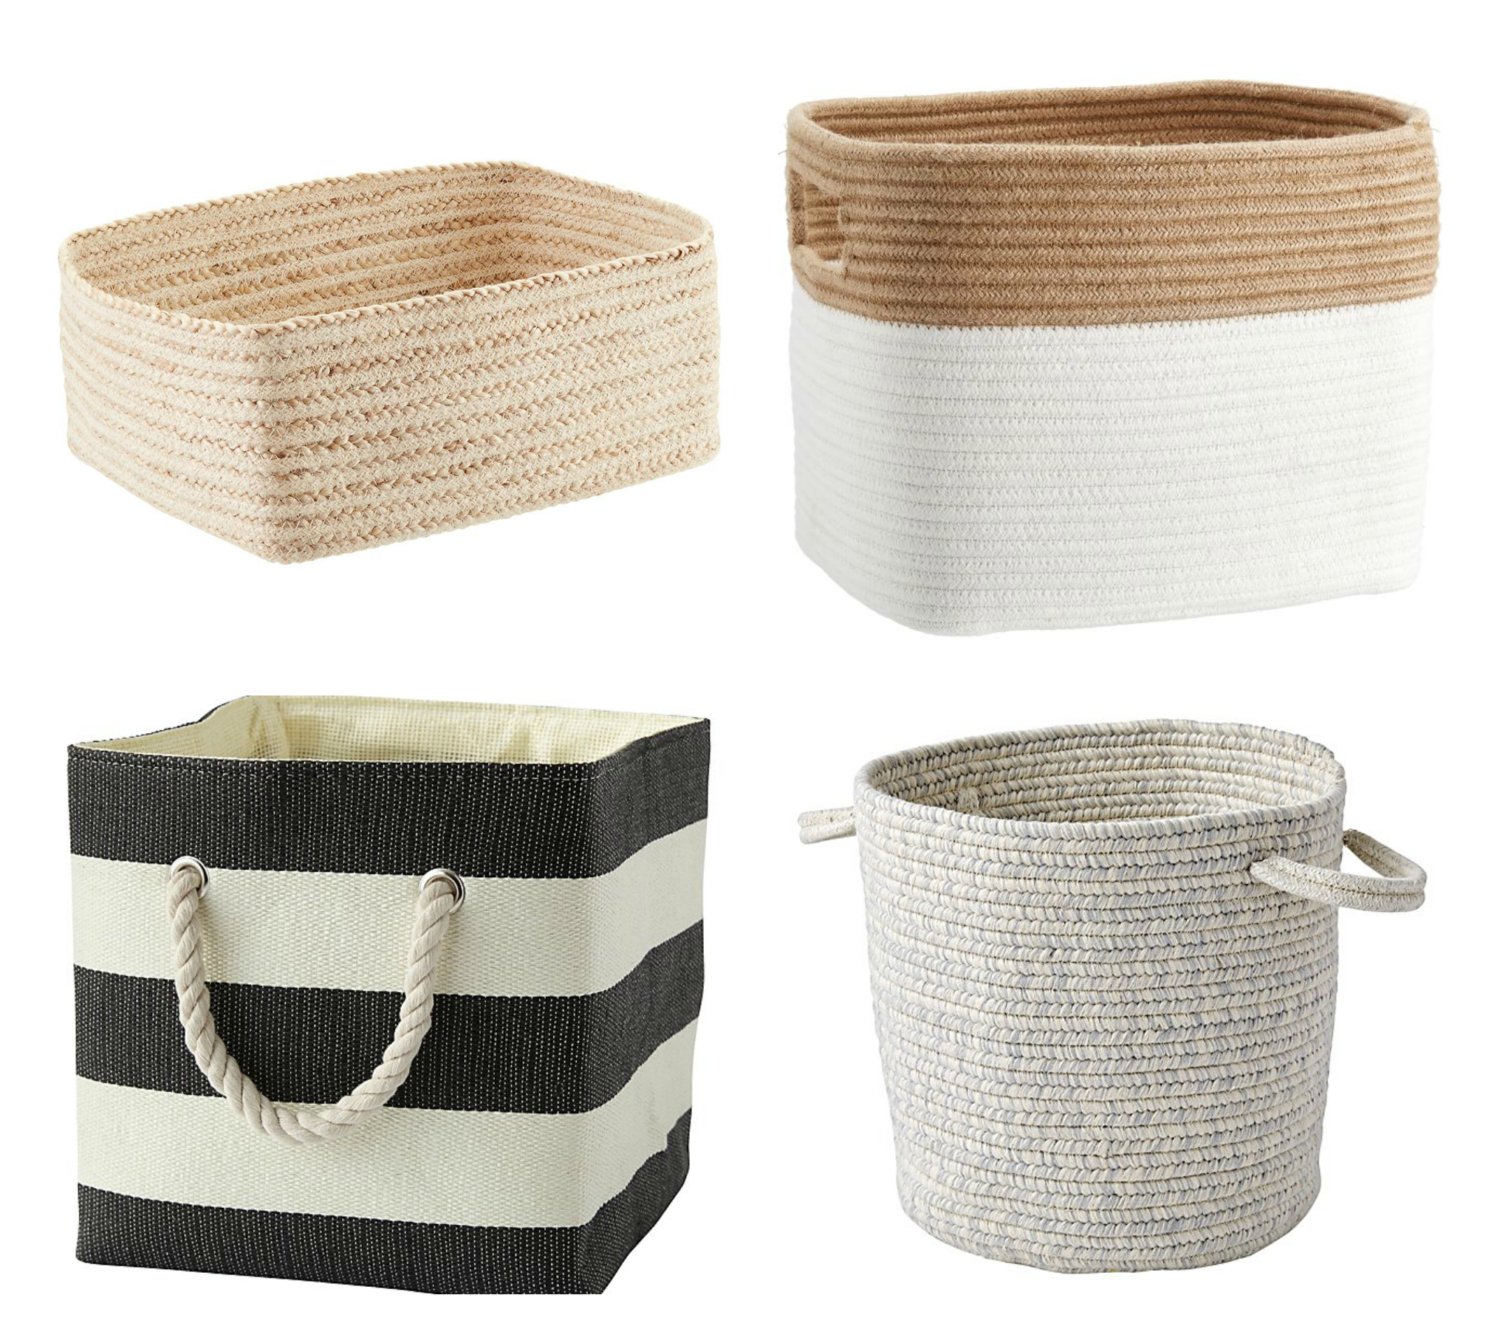 Twenty stylish, affordable mudroom baskets